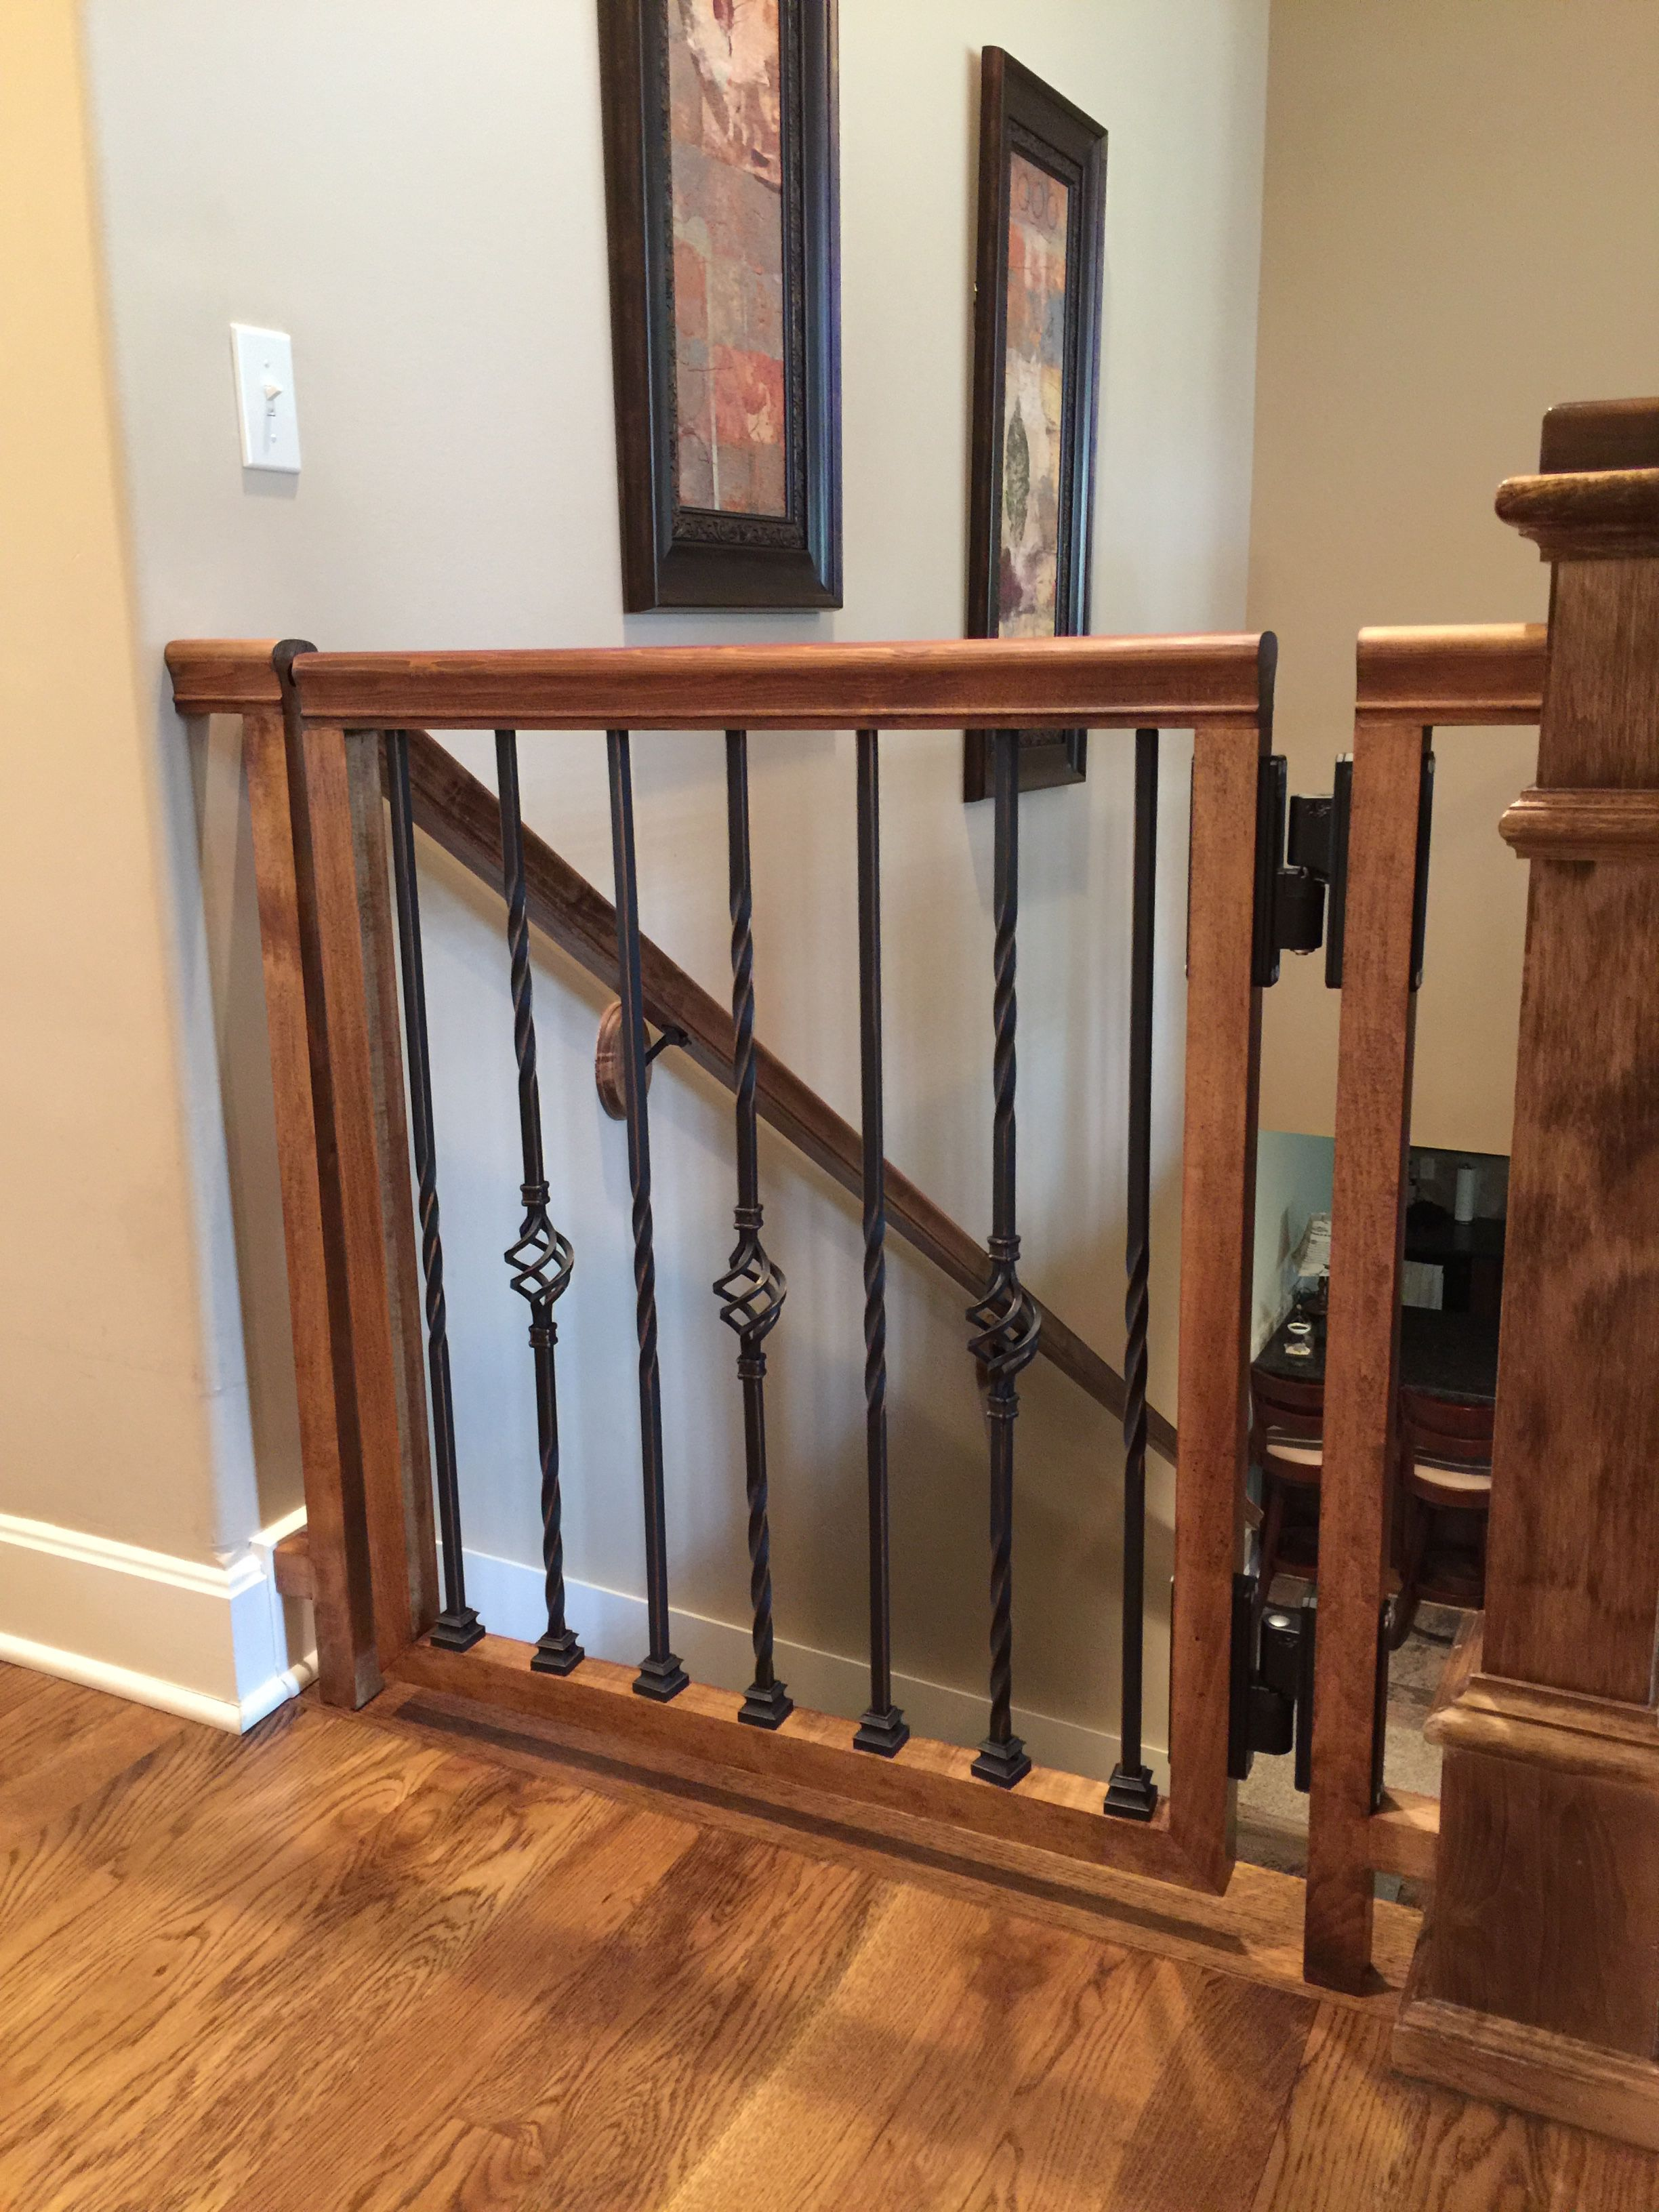 Custom Dog Gate Built To Match Our Existing Stair Railing. Made From 2x2  Maple, 211 Provincial Stain, Boerboel 180 Hinges And Iron Balusters.